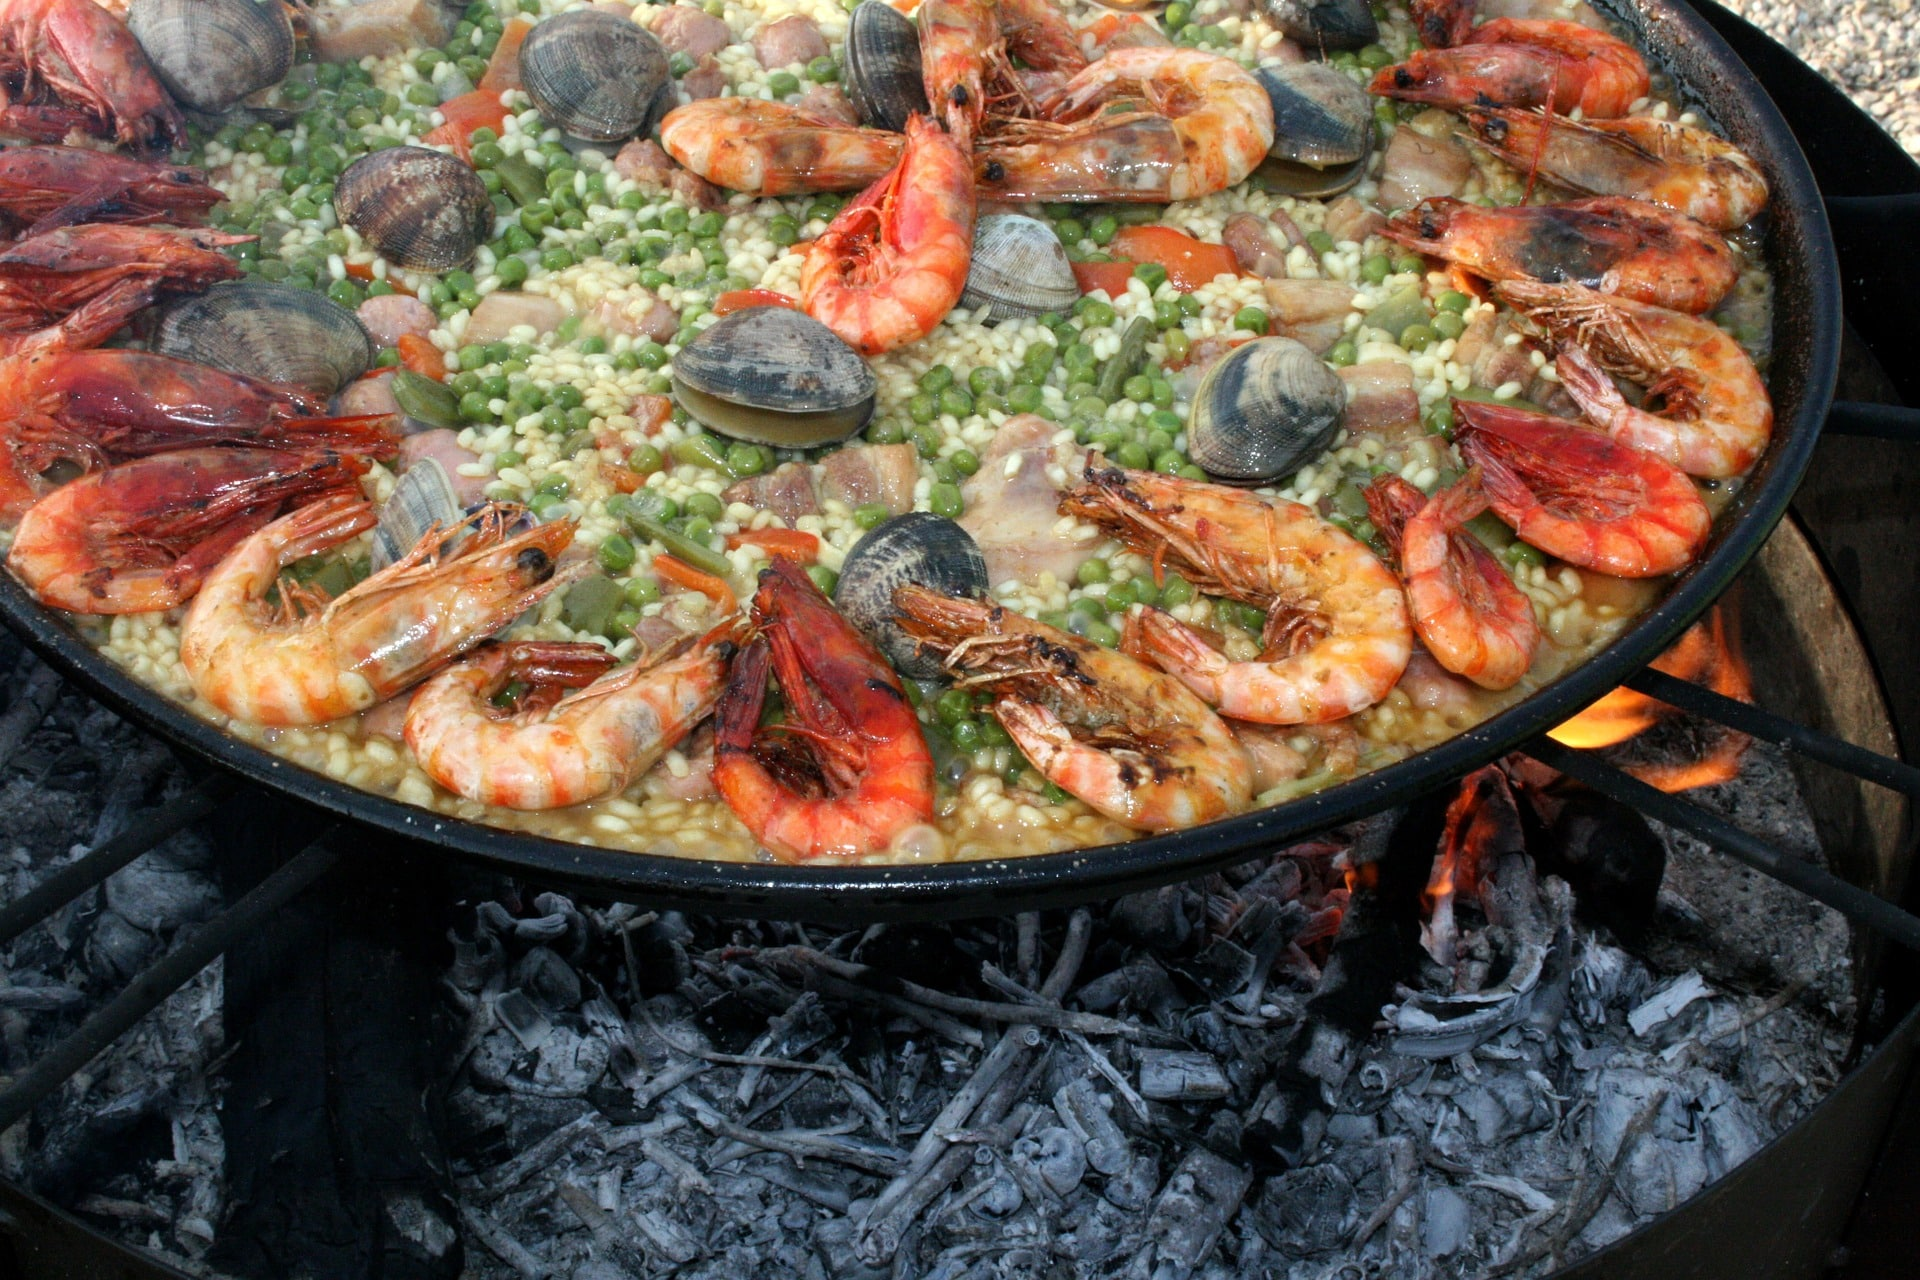 Valencia is an amazing place to visit in Spain for paella